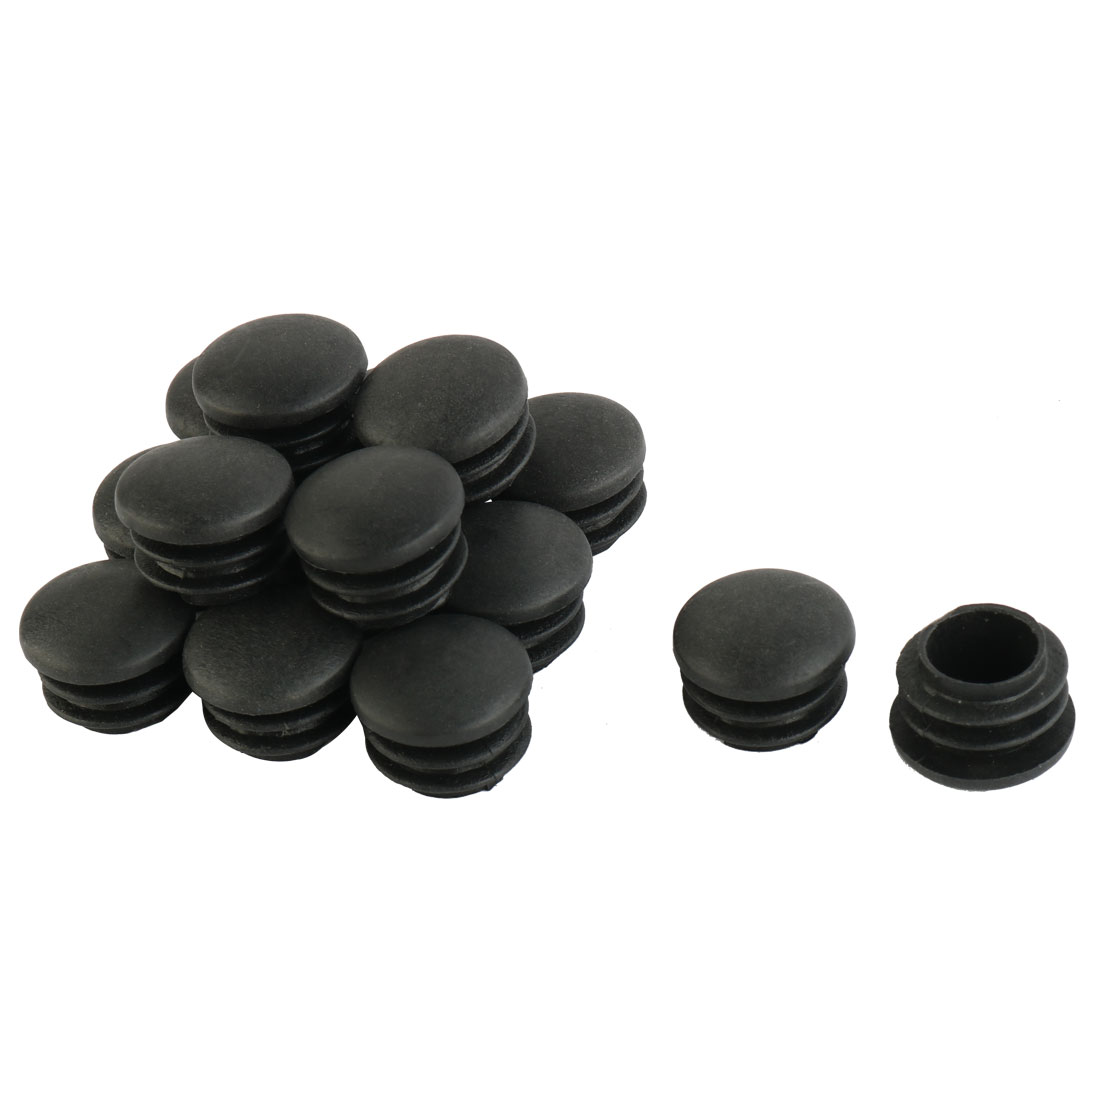 Chair Table Legs 22mm Diameter Plastic Cap Round Tube Insert 15 Pcs